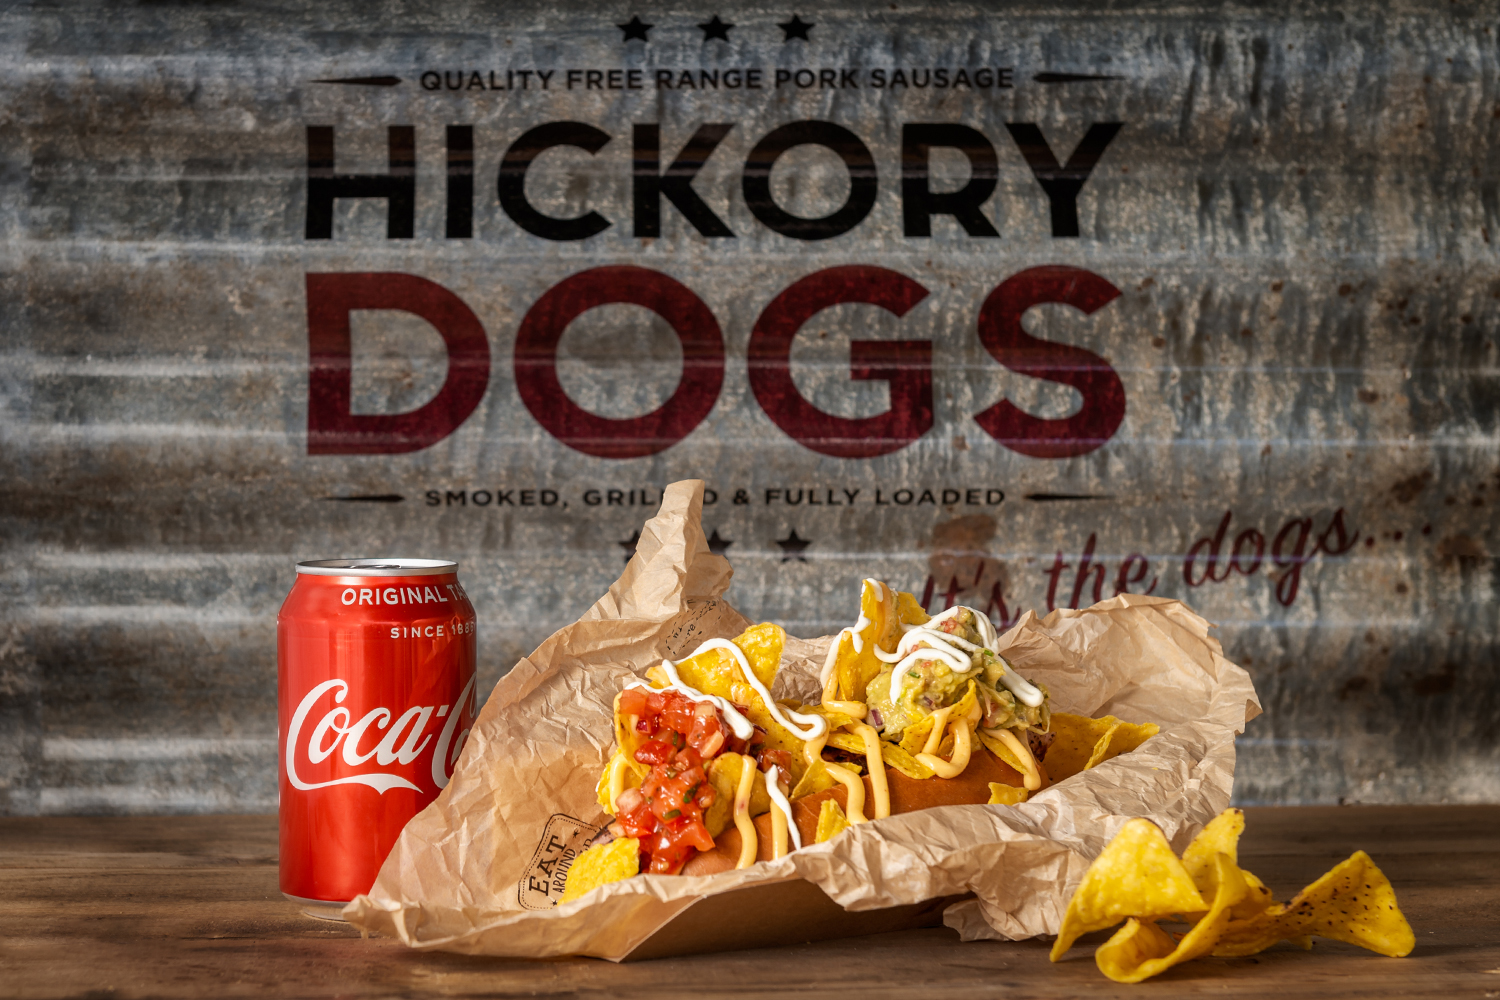 Hickory Dogs